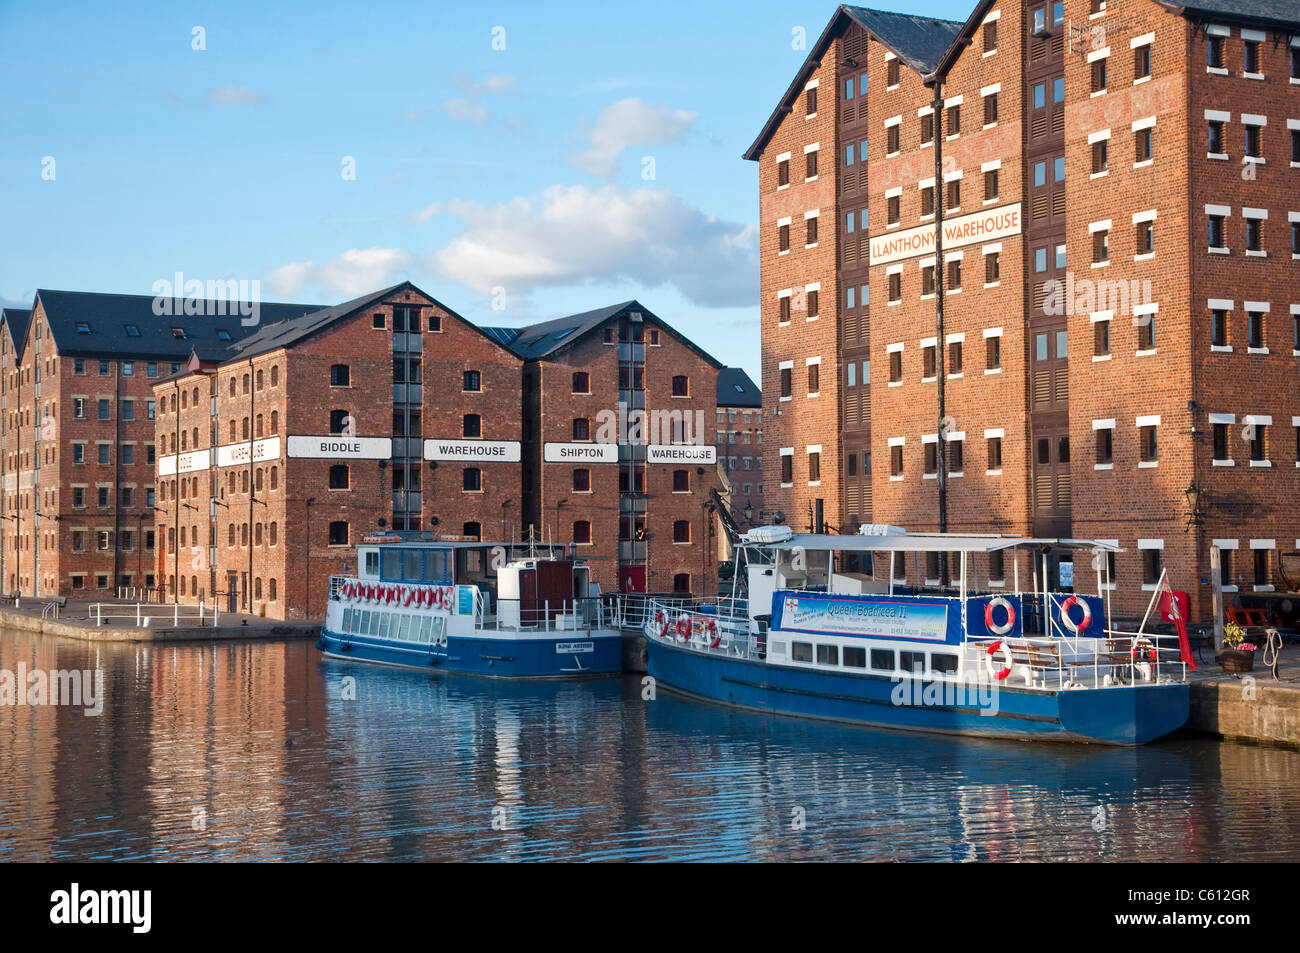 Gloucester Docks - old warehouses renovated and converted for new uses - Gloucestershire, UK. - Stock Image